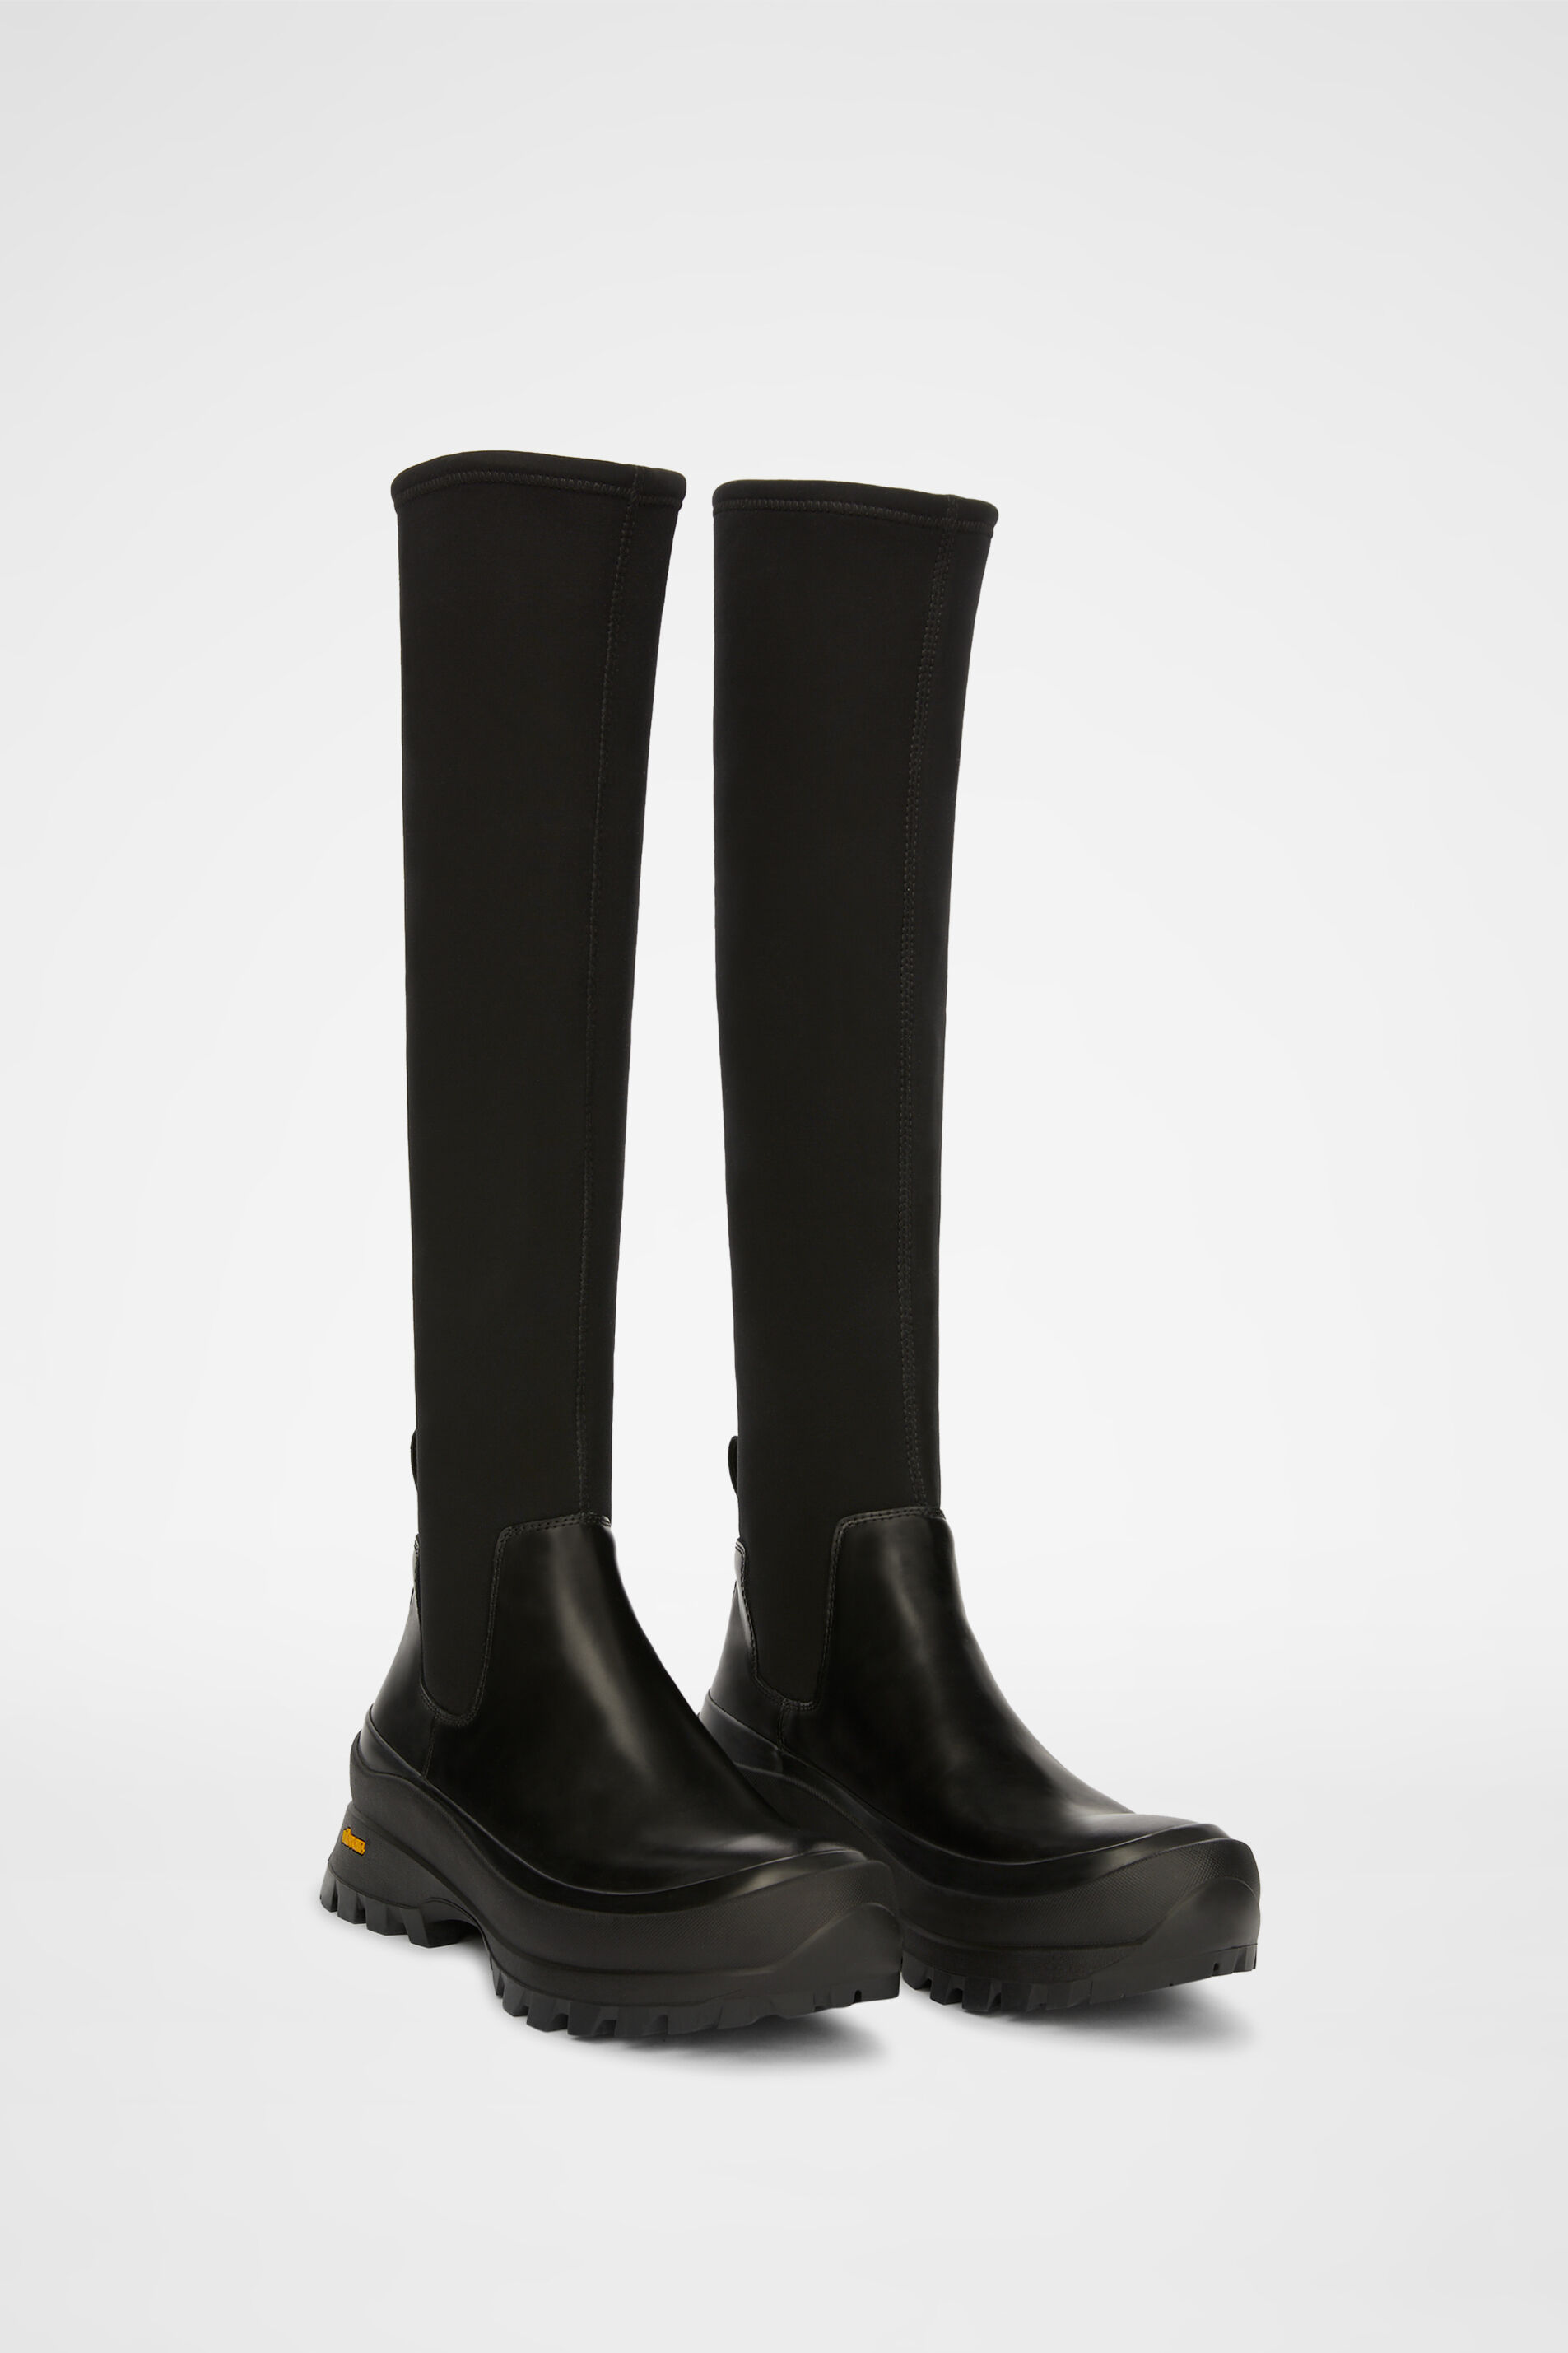 Boots, black, large